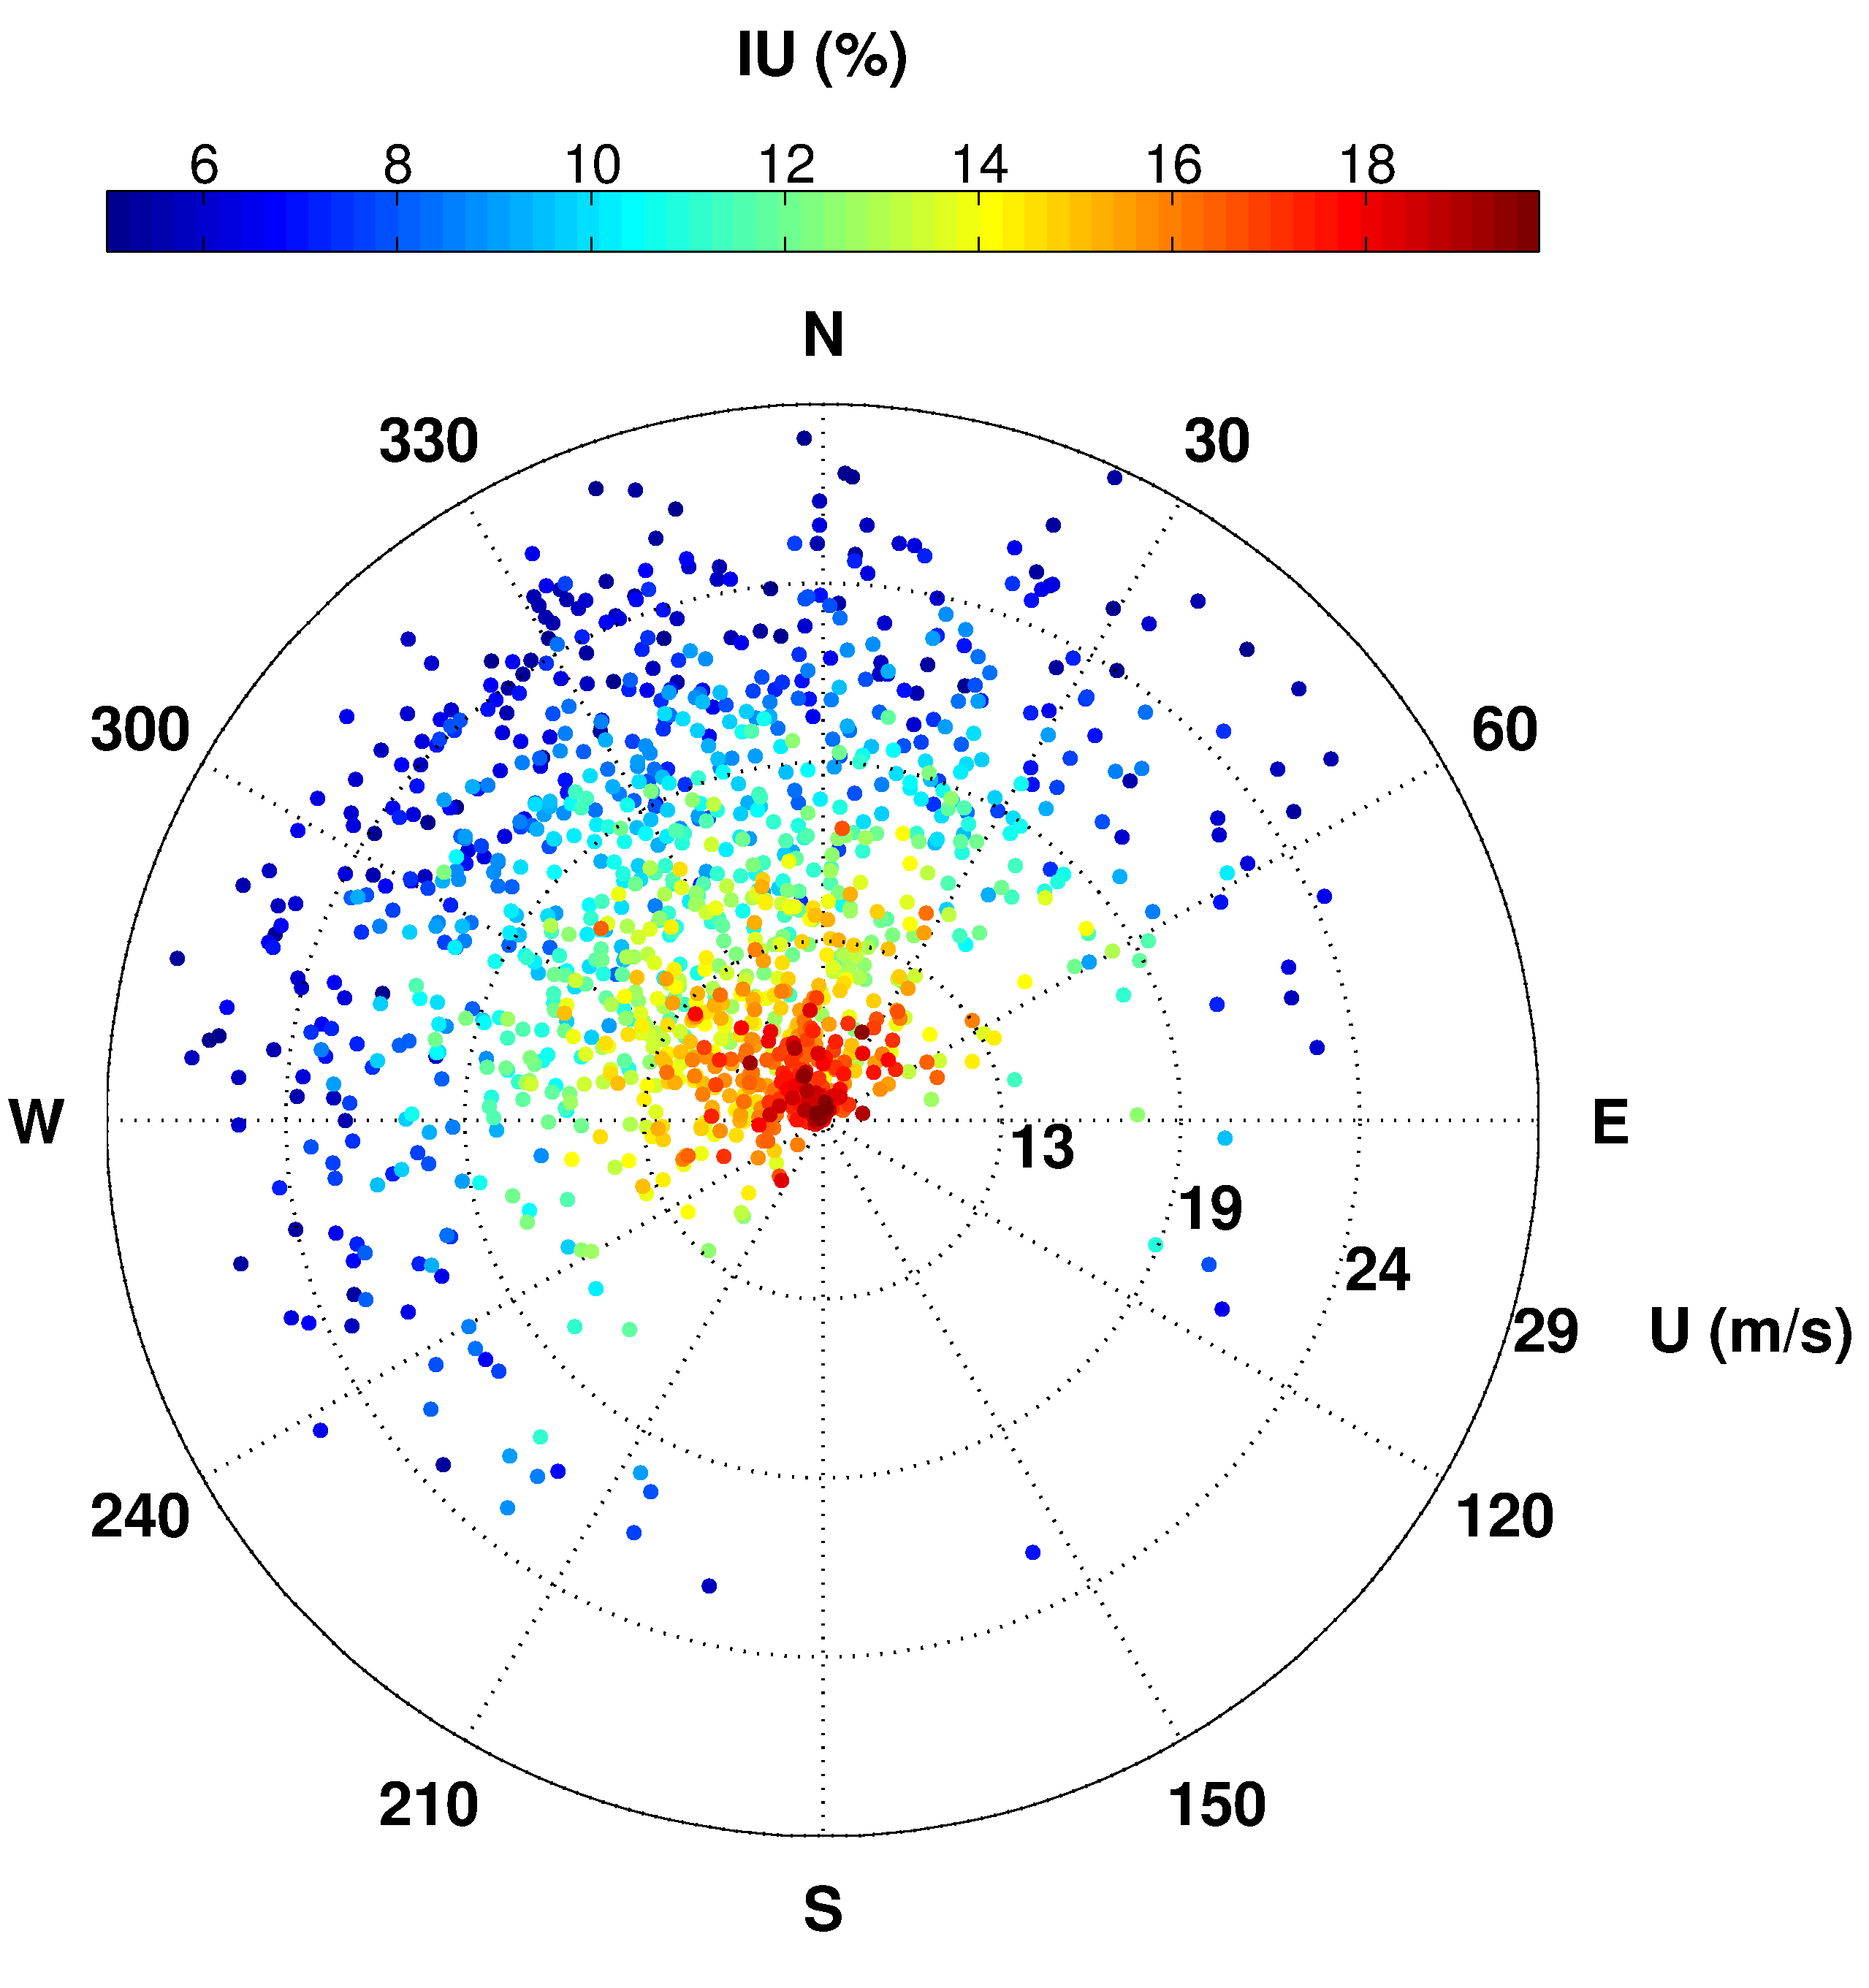 Wind Rose As A Scatter Plot